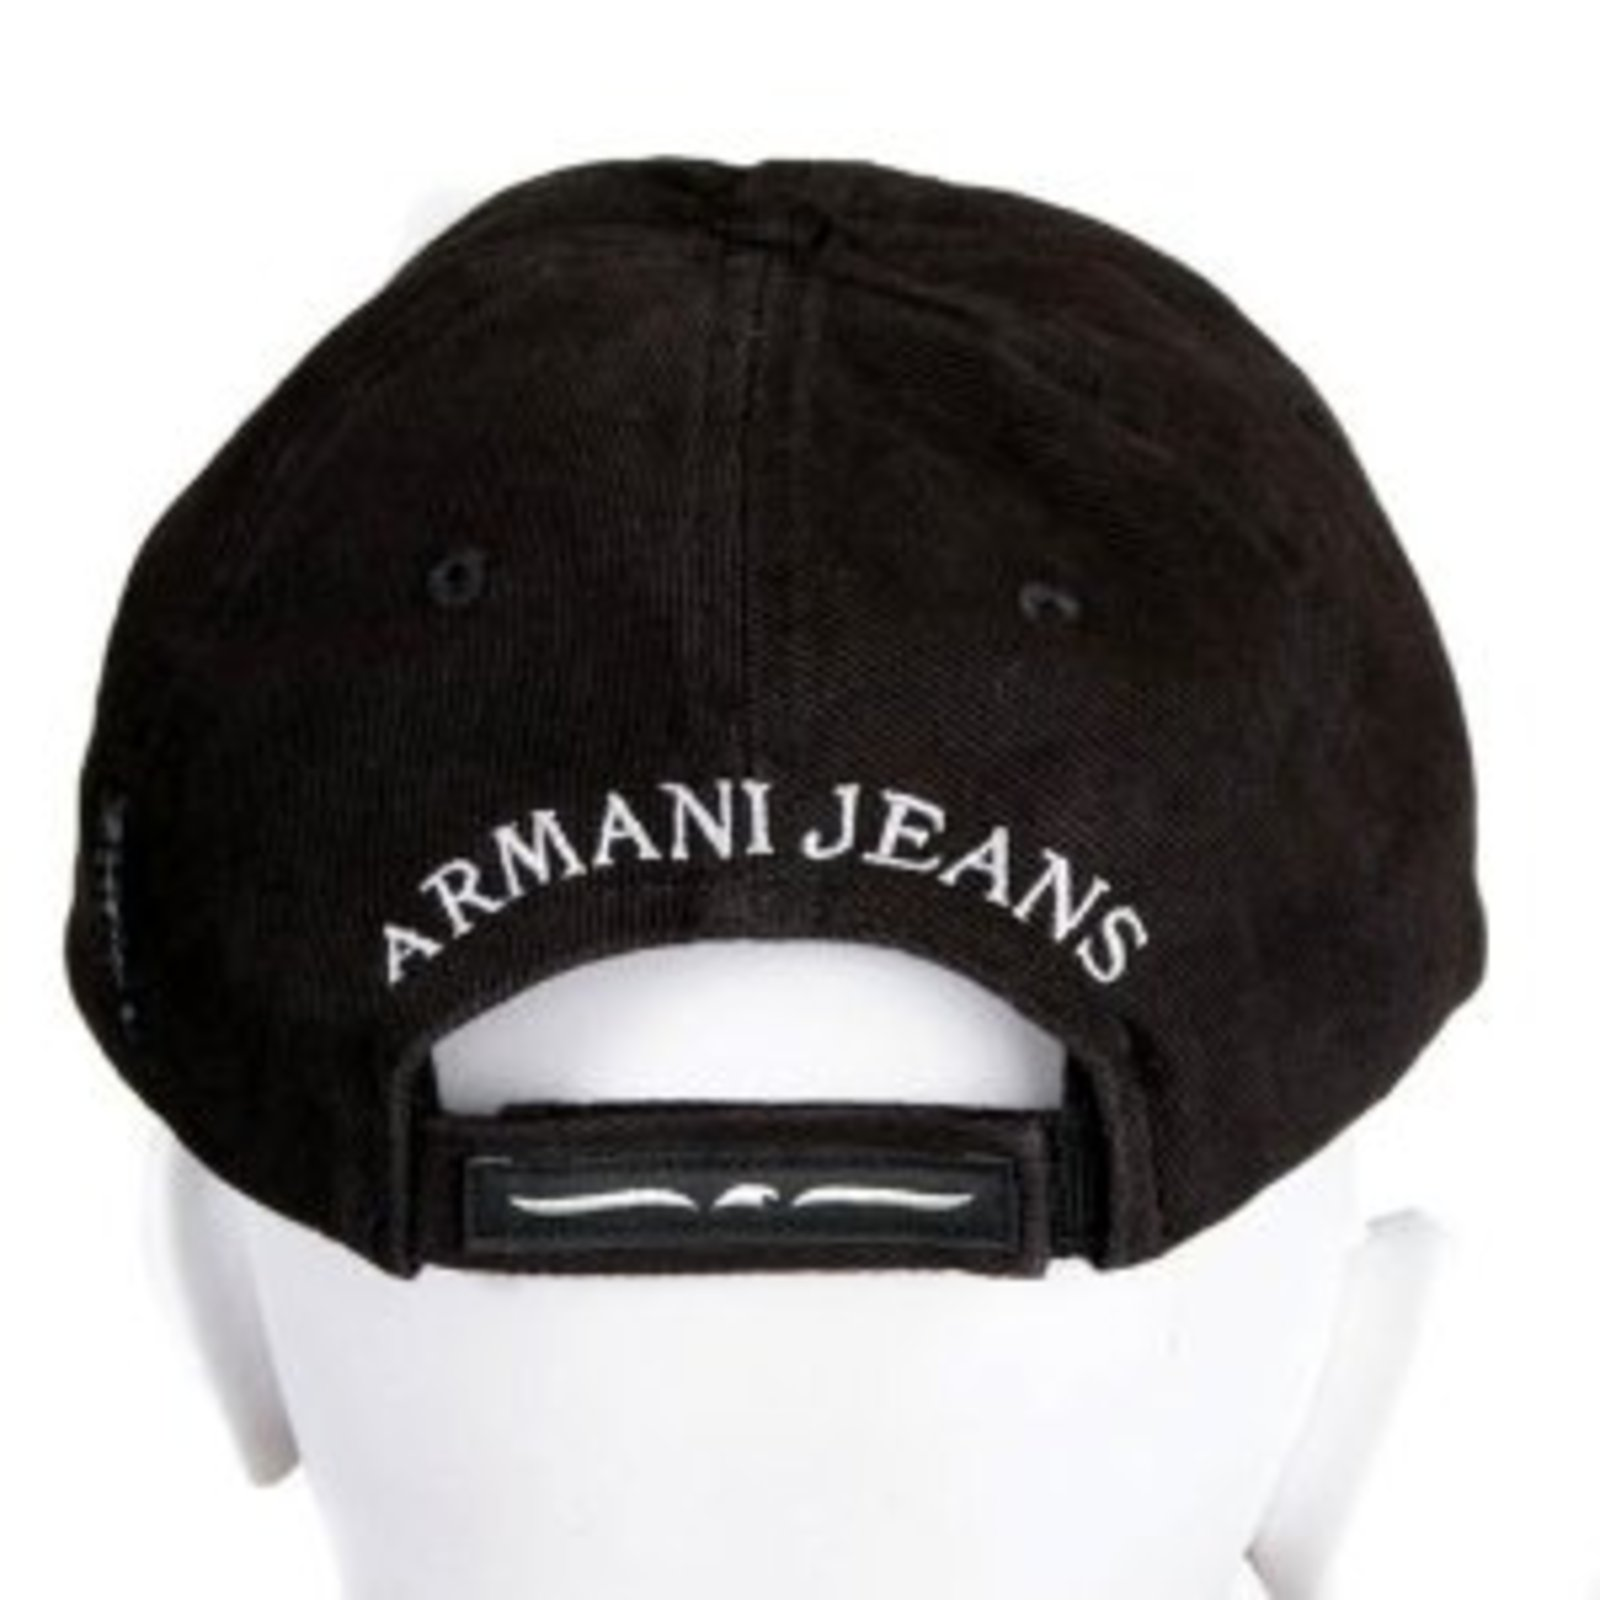 33dcc7fbf17 Armani Jeans Black Cap G640133 at Togged Clothing